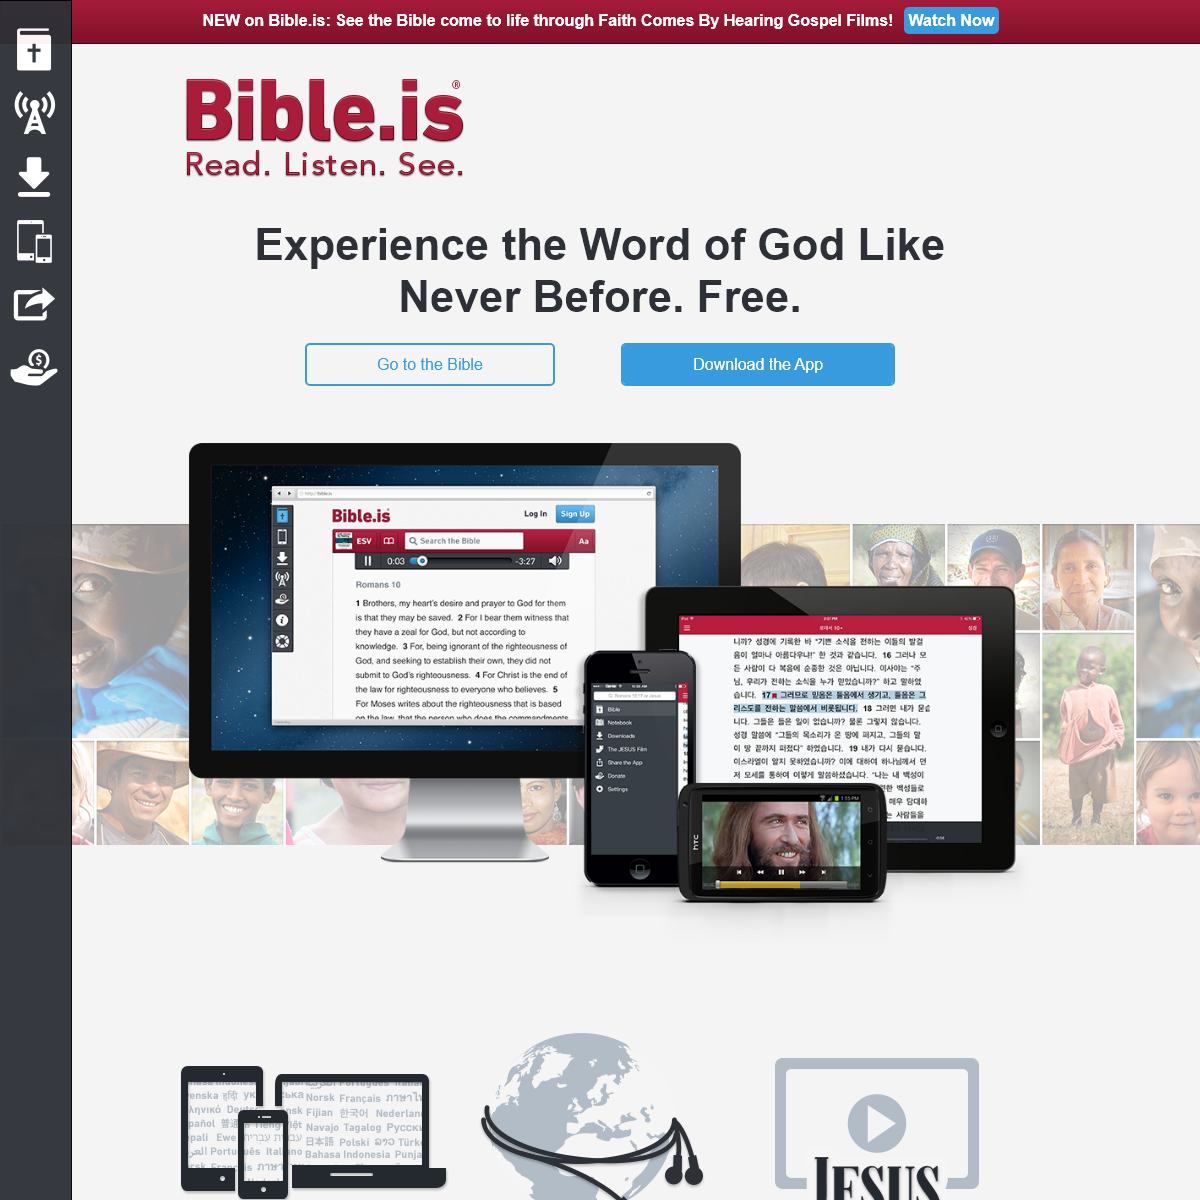 Bible.is - Experience the Word of God Like Never Before. Free.